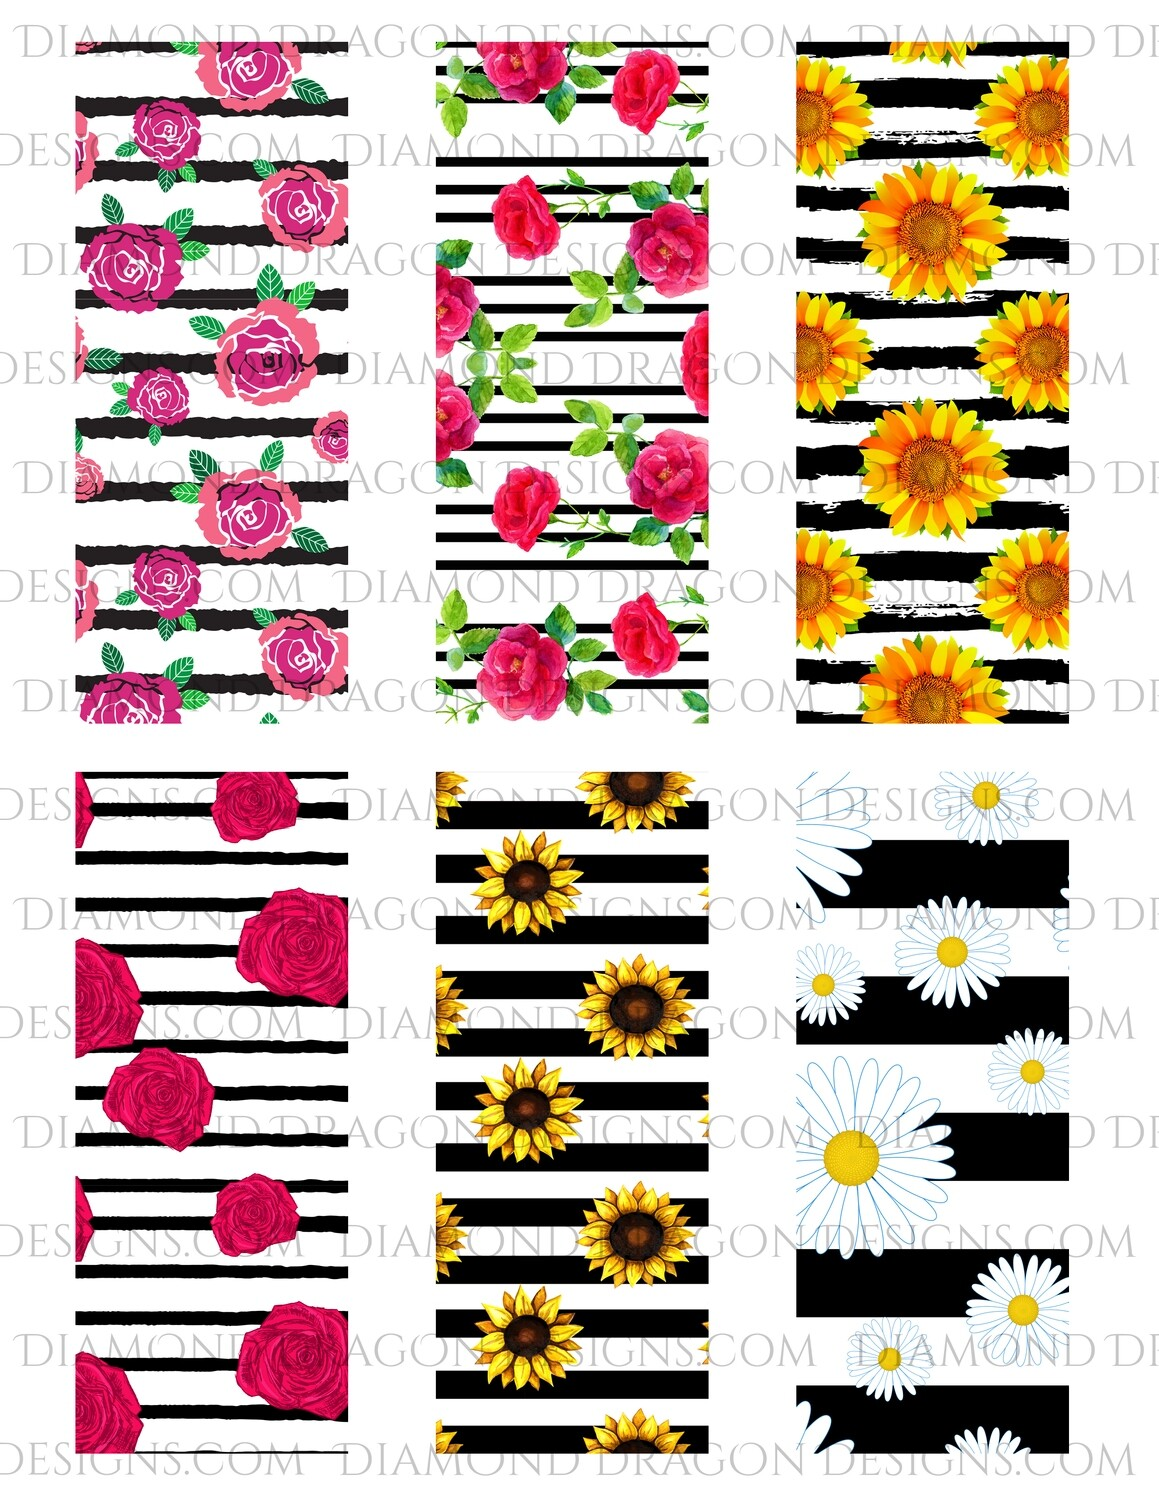 Pen Wraps - 6 Floral Stripe Designs 2'' x 5'', 1 Full Page PNG, Digital Image